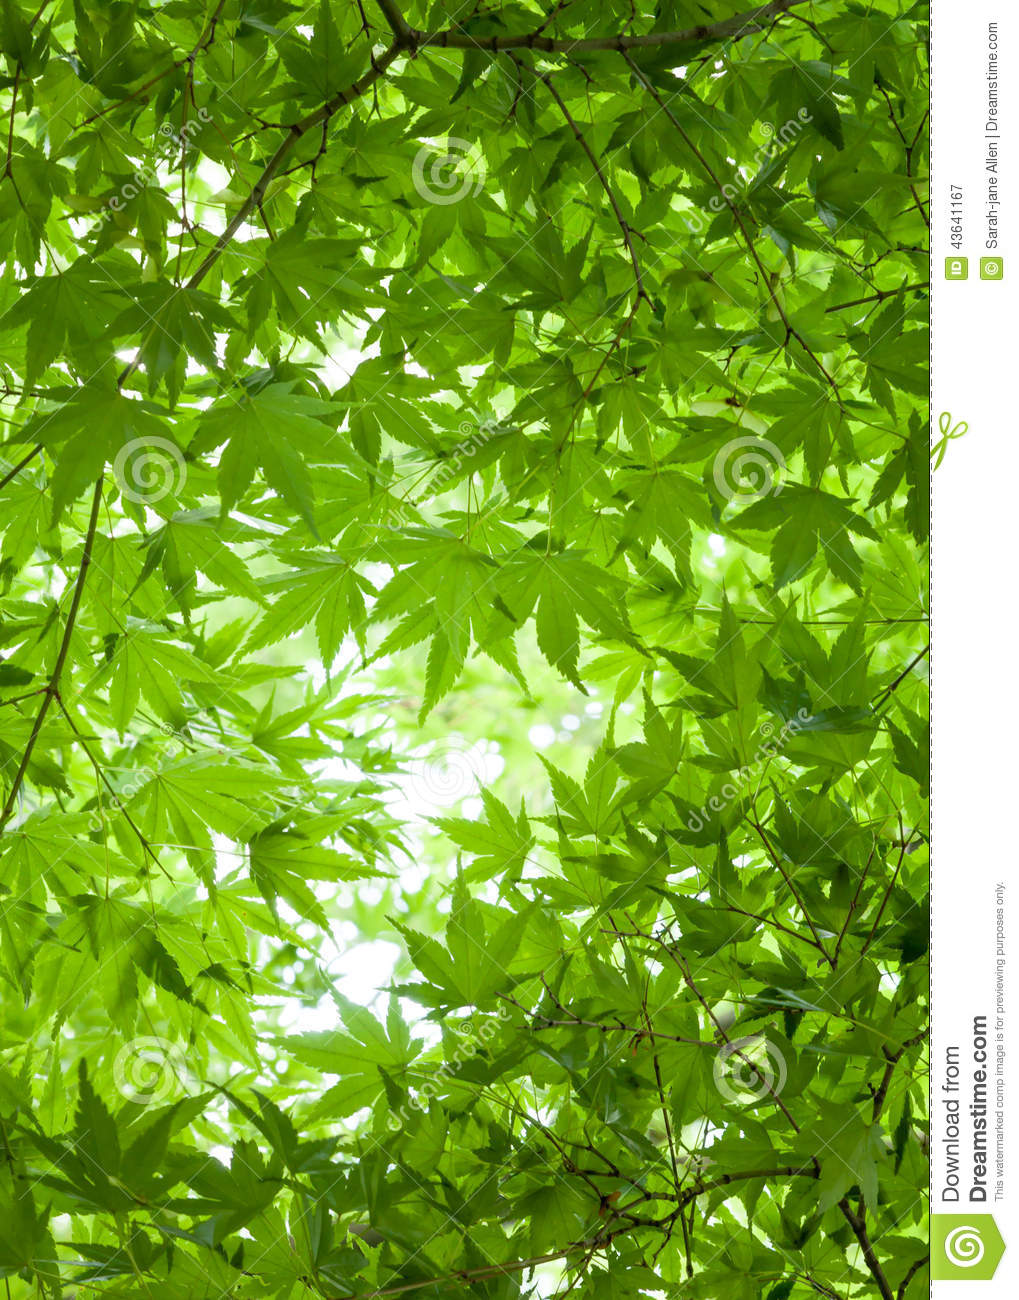 Royalty-Free Stock Photo  sc 1 st  Dreamstime.com & Background Of Green Leaves Of Japanese Maple Tree Canopy Overhea ...